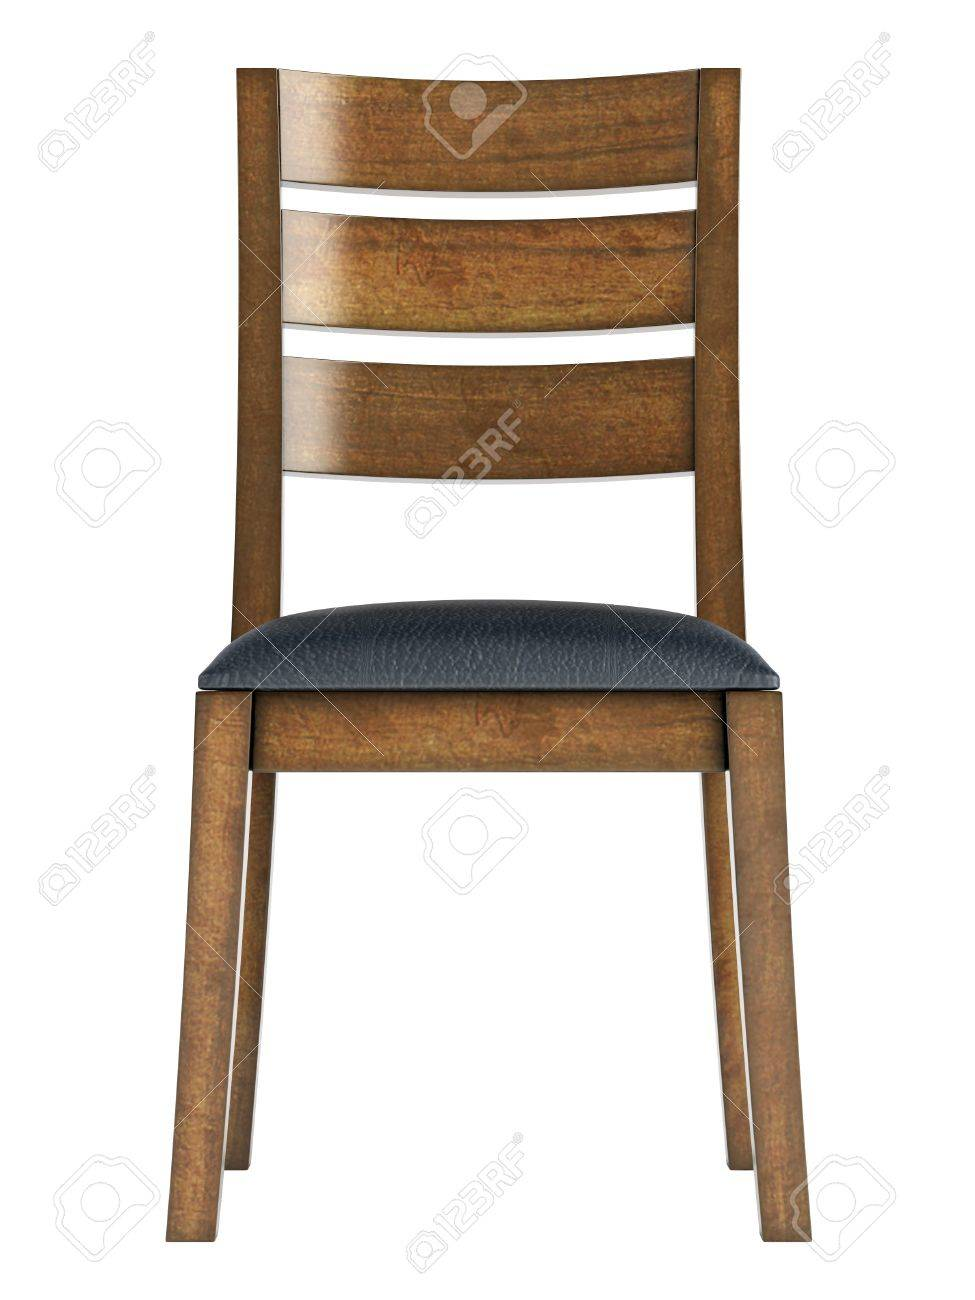 Antique wooden chair isolated on white background Stock Photo - 14221933 - Antique Wooden Chair Isolated On White Background Stock Photo